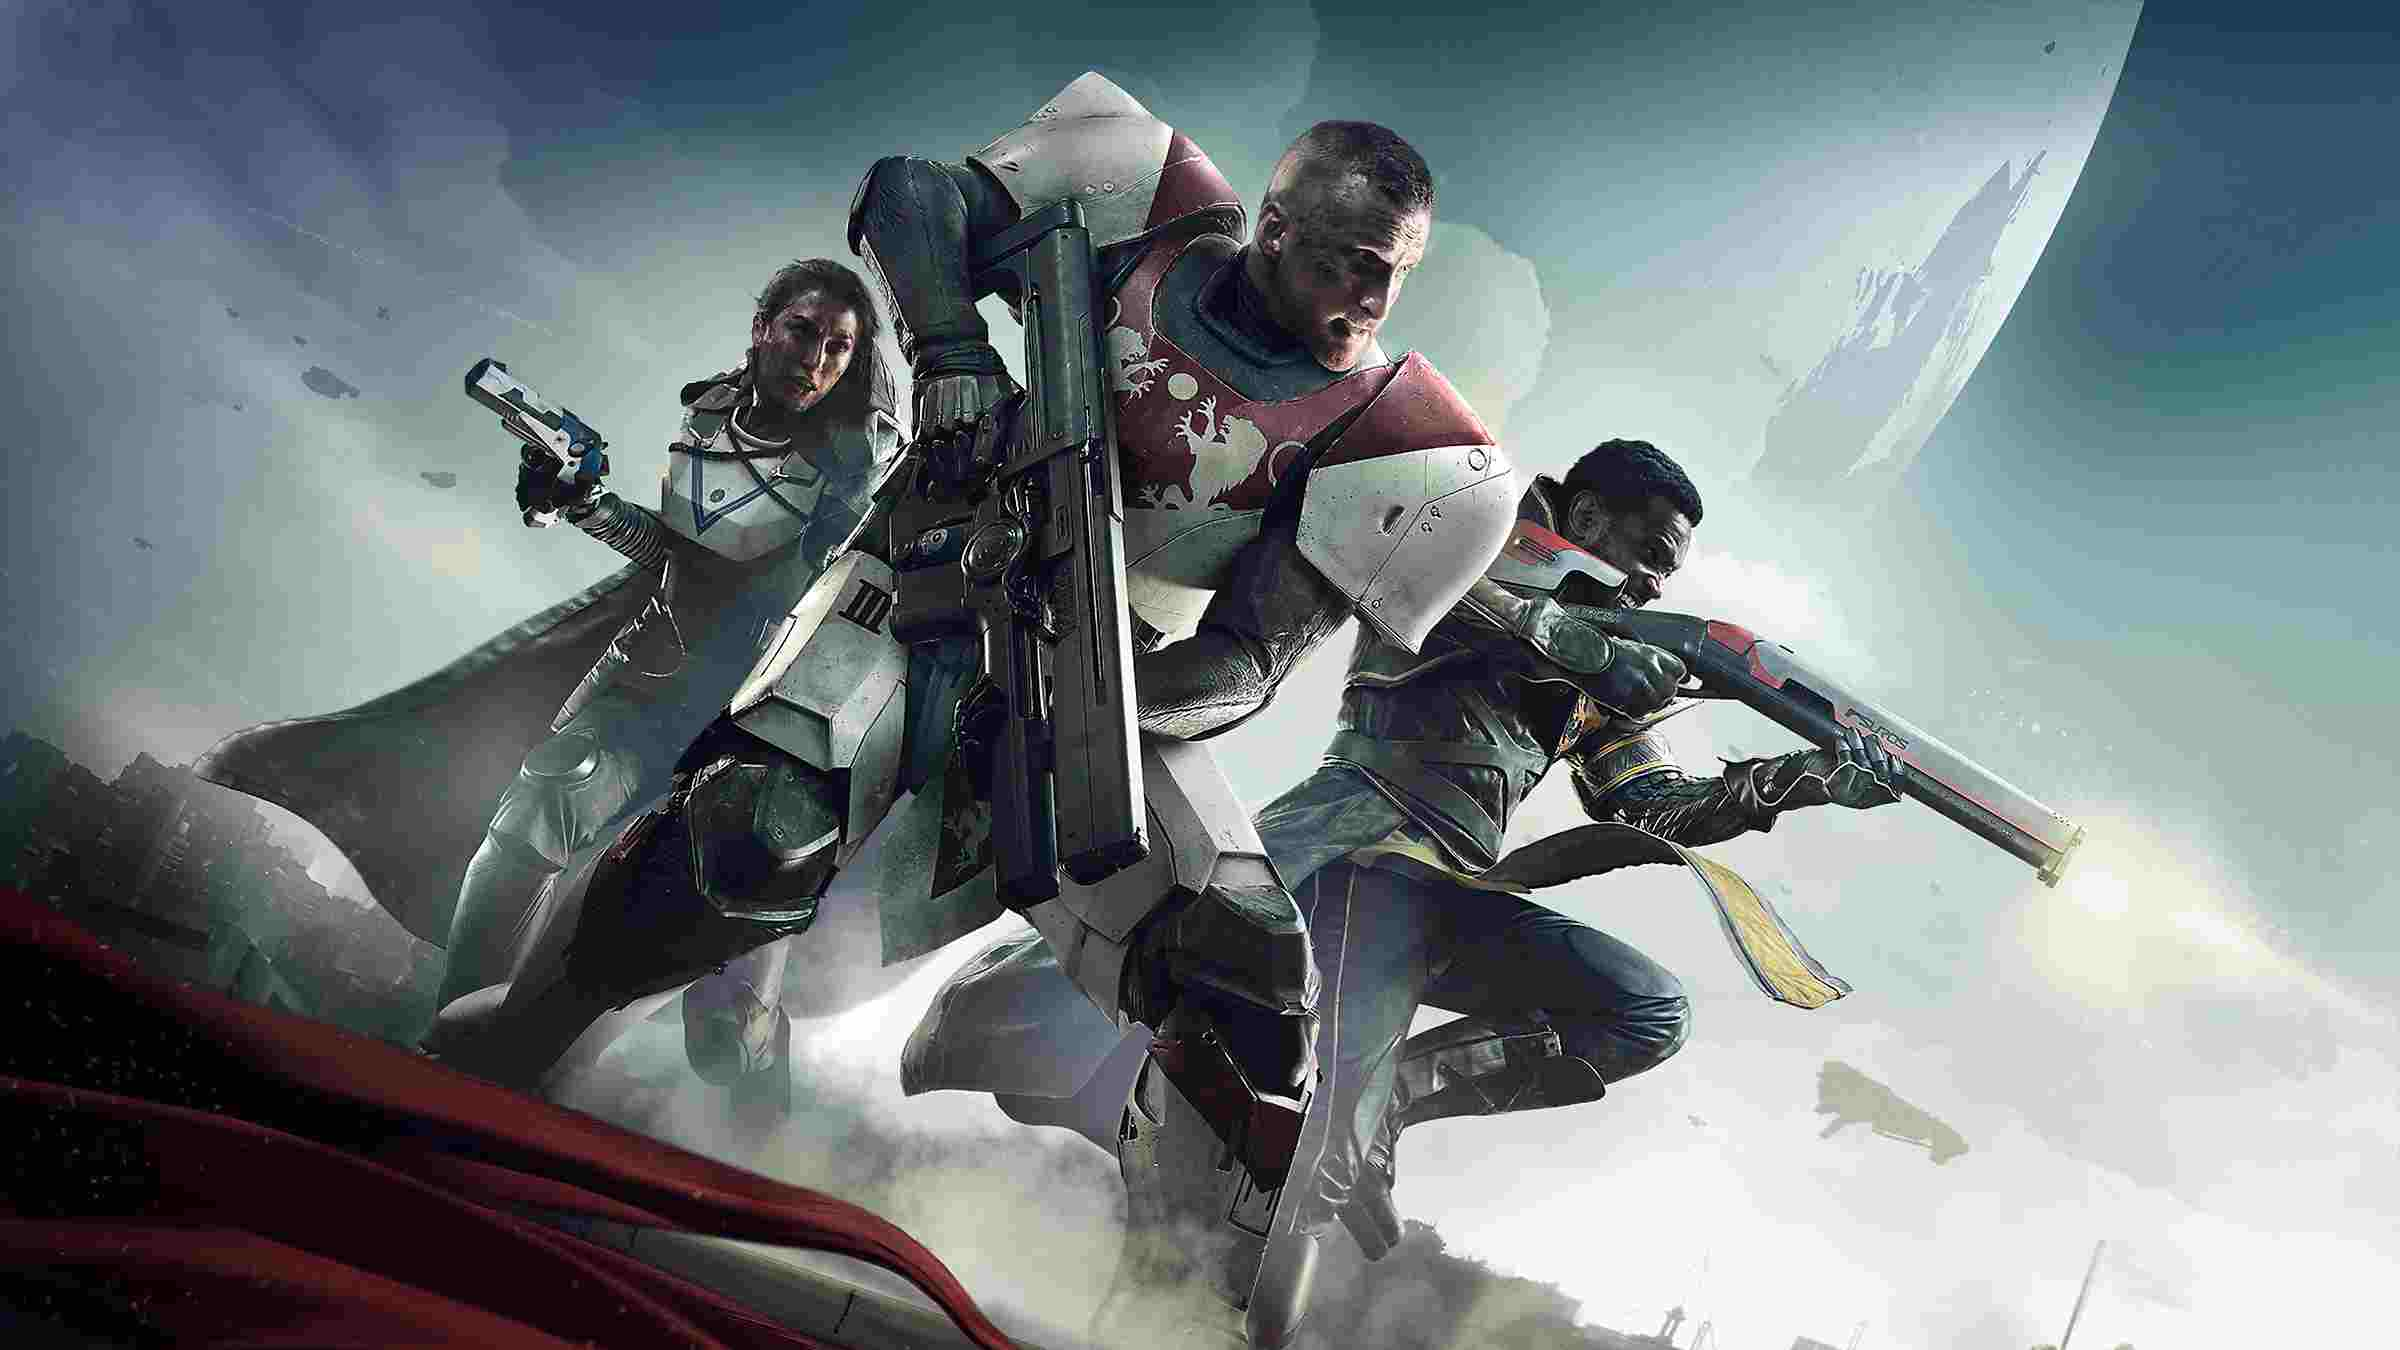 Destiny 2 main characters holding weapons